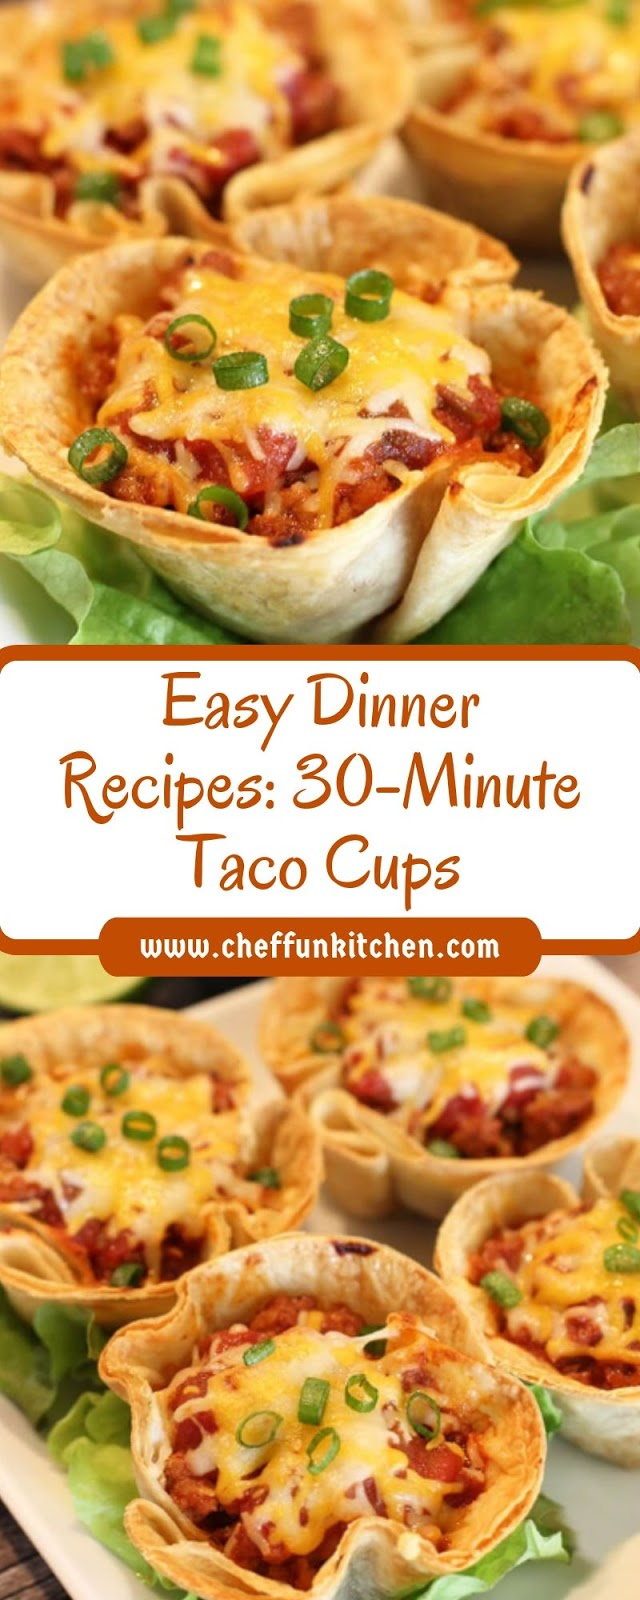 Easy Dinner Recipes: 30-Minute Taco Cups